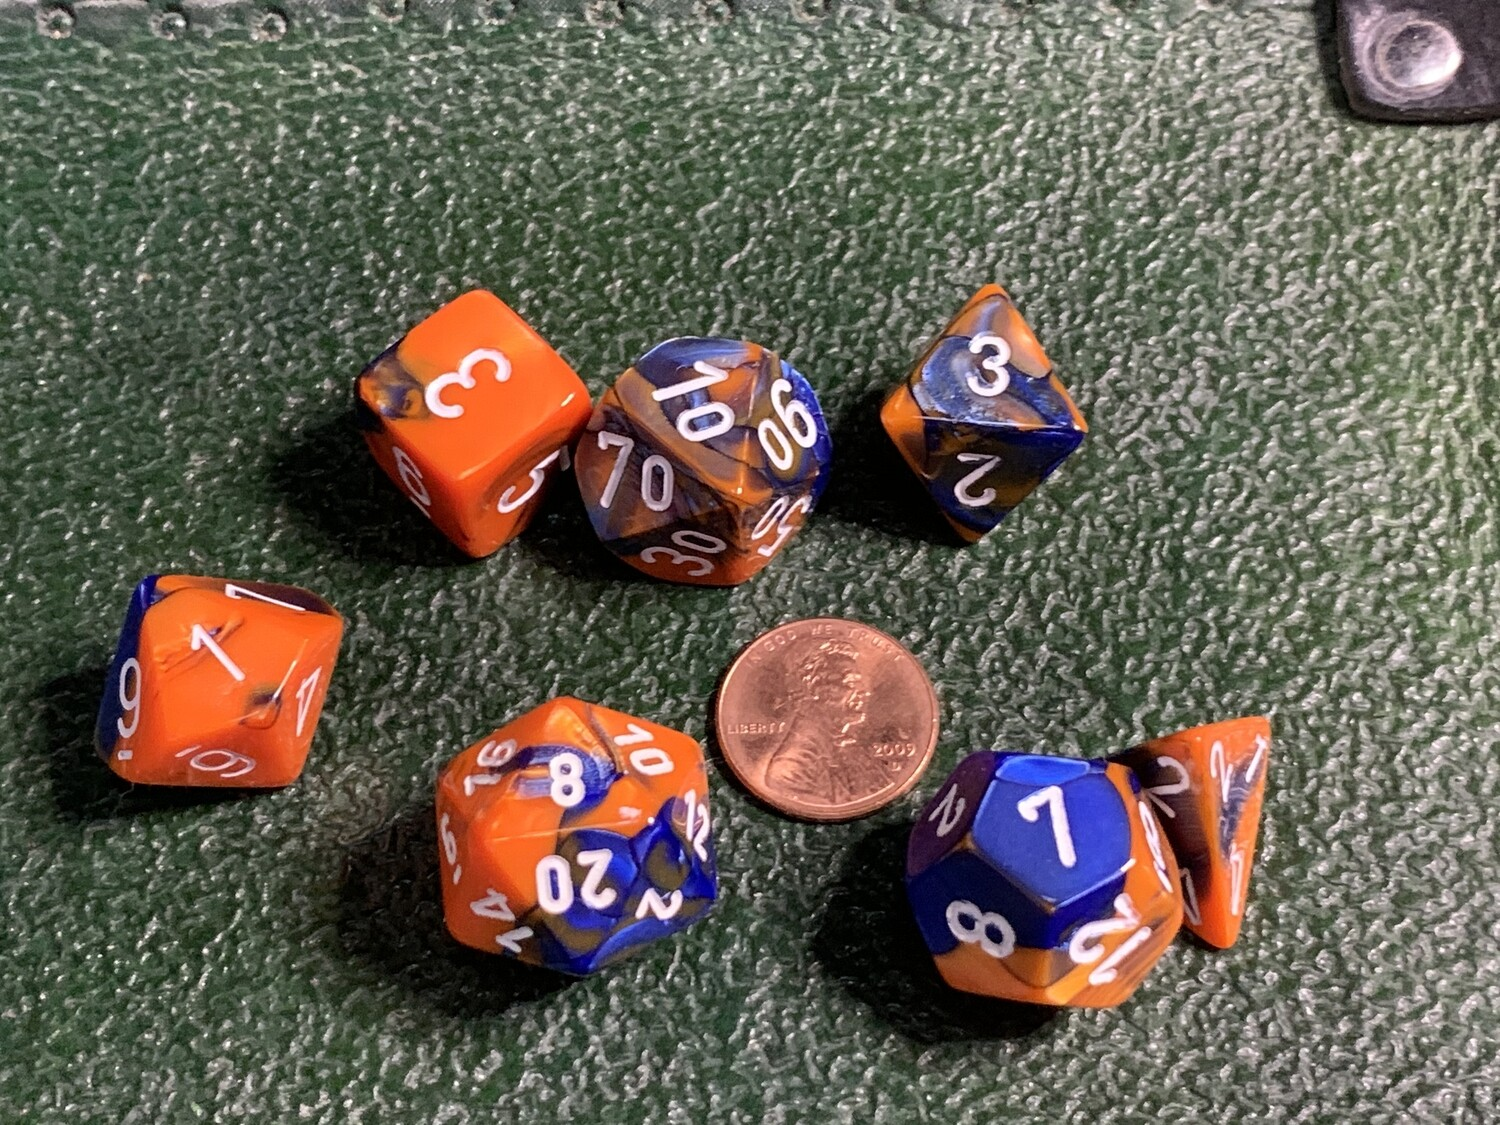 7 Die Dice Polyhedral Set - Chessex Gemini Blue and Orange with White Tabletop RPG